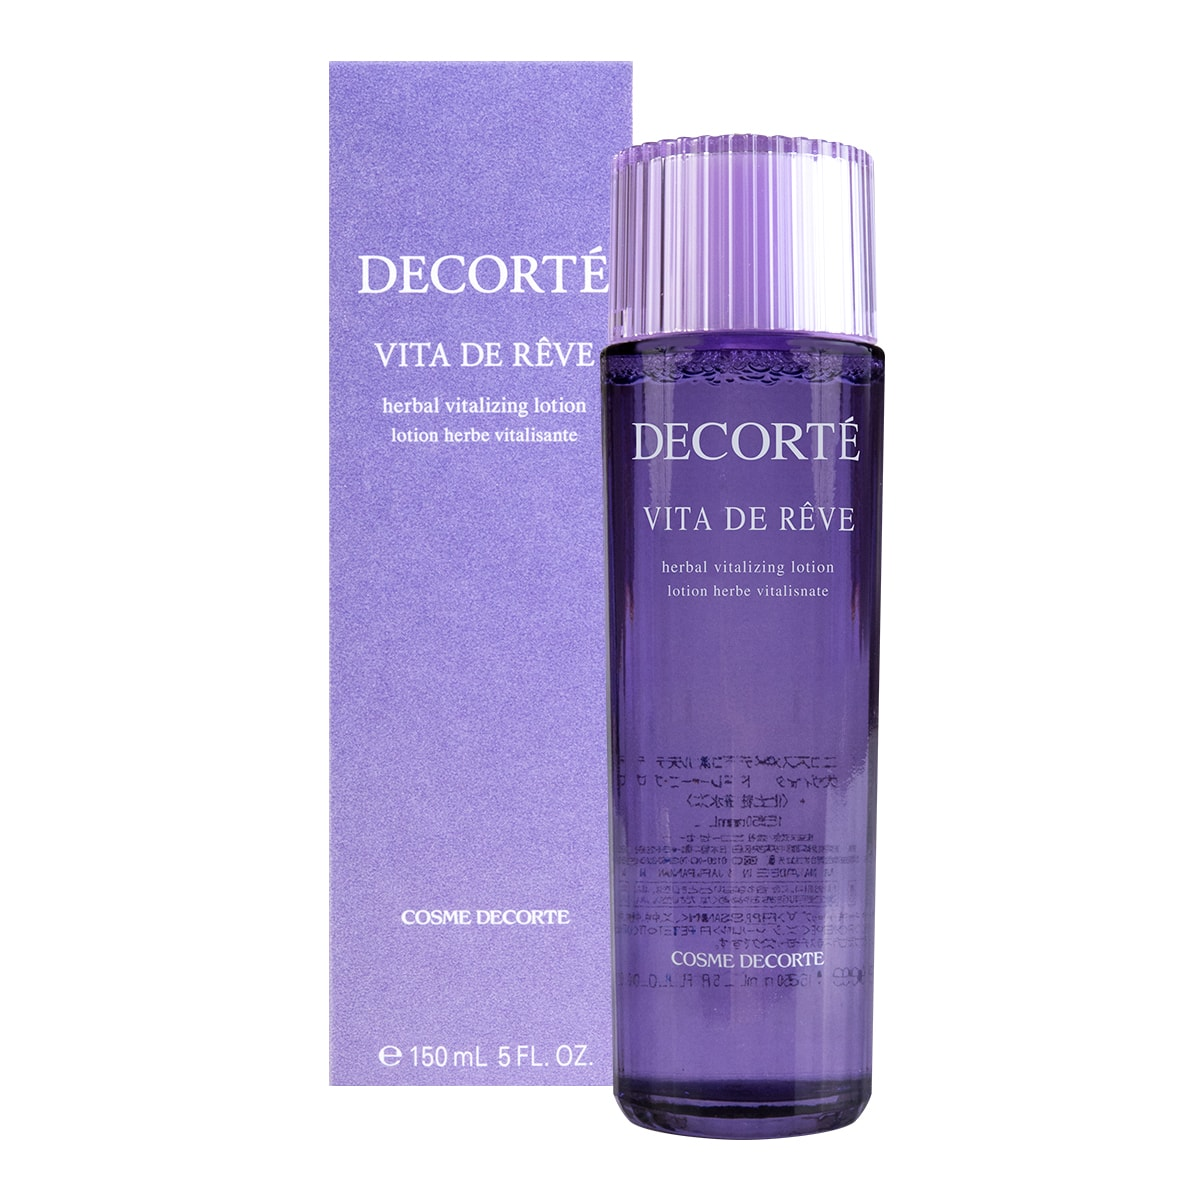 COSME DECORTE Vita De Reve Herbal Vitalizing Lotion 150ml